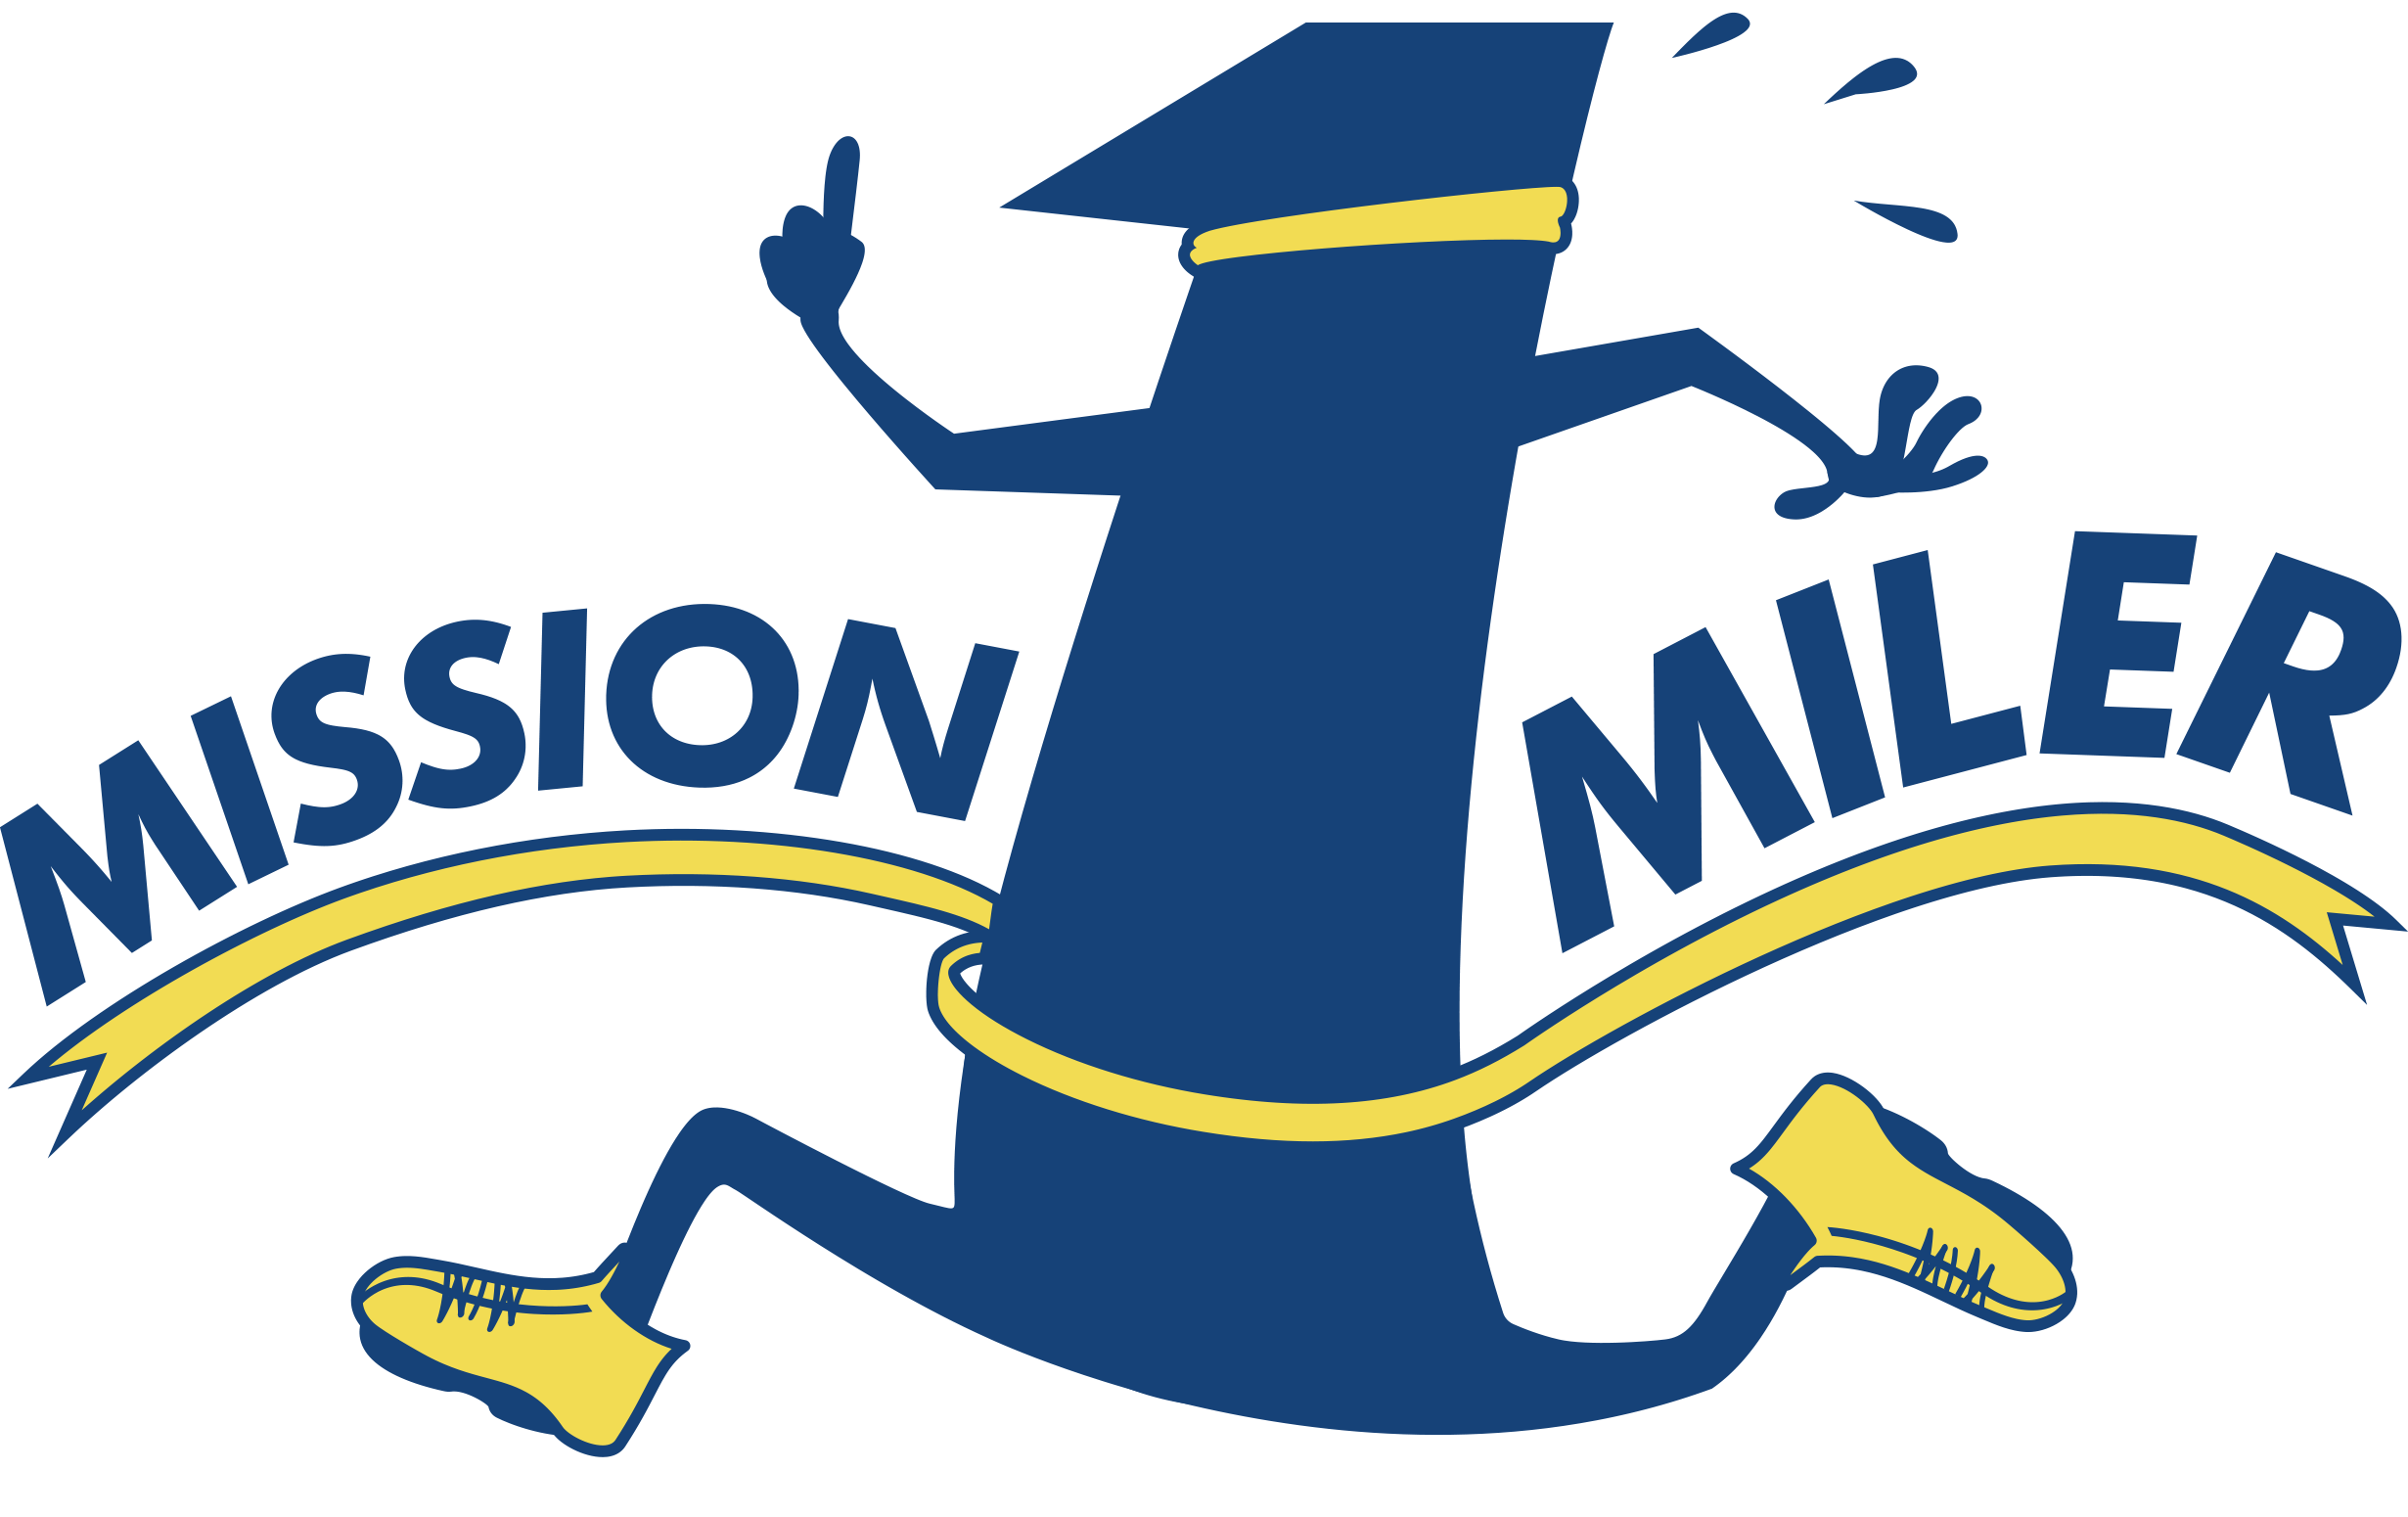 mission 1 miler new logo.png